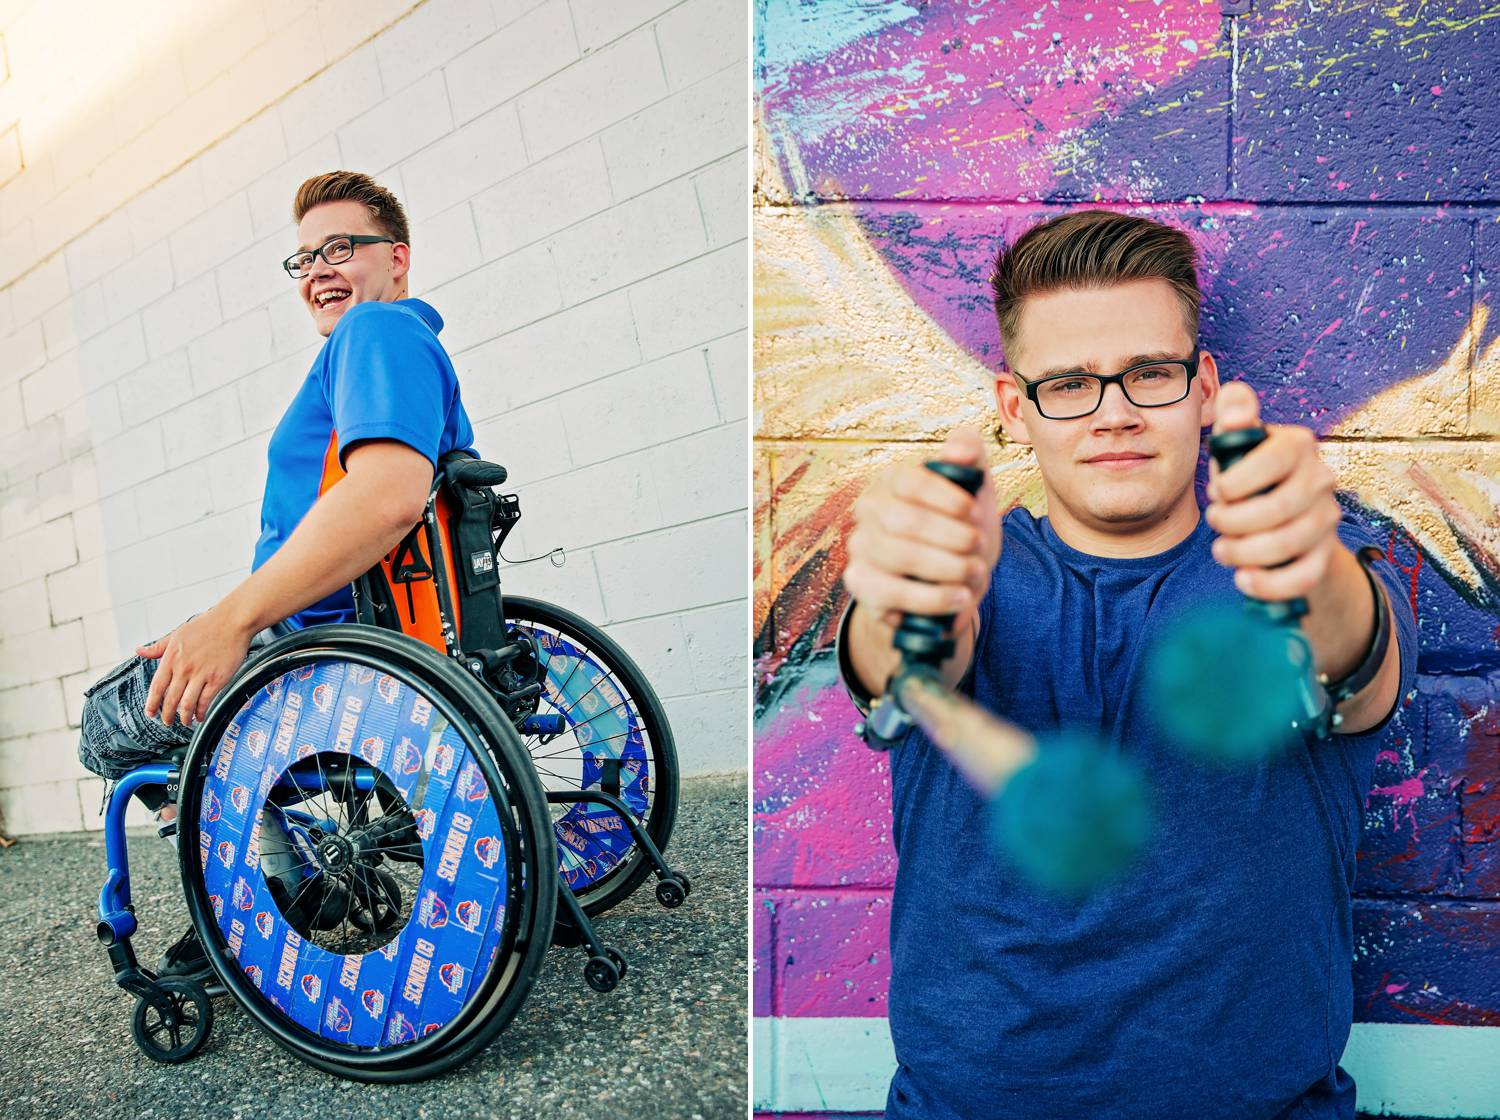 A young man laughs and goofs around while getting photographed in his colorful wheelchair.